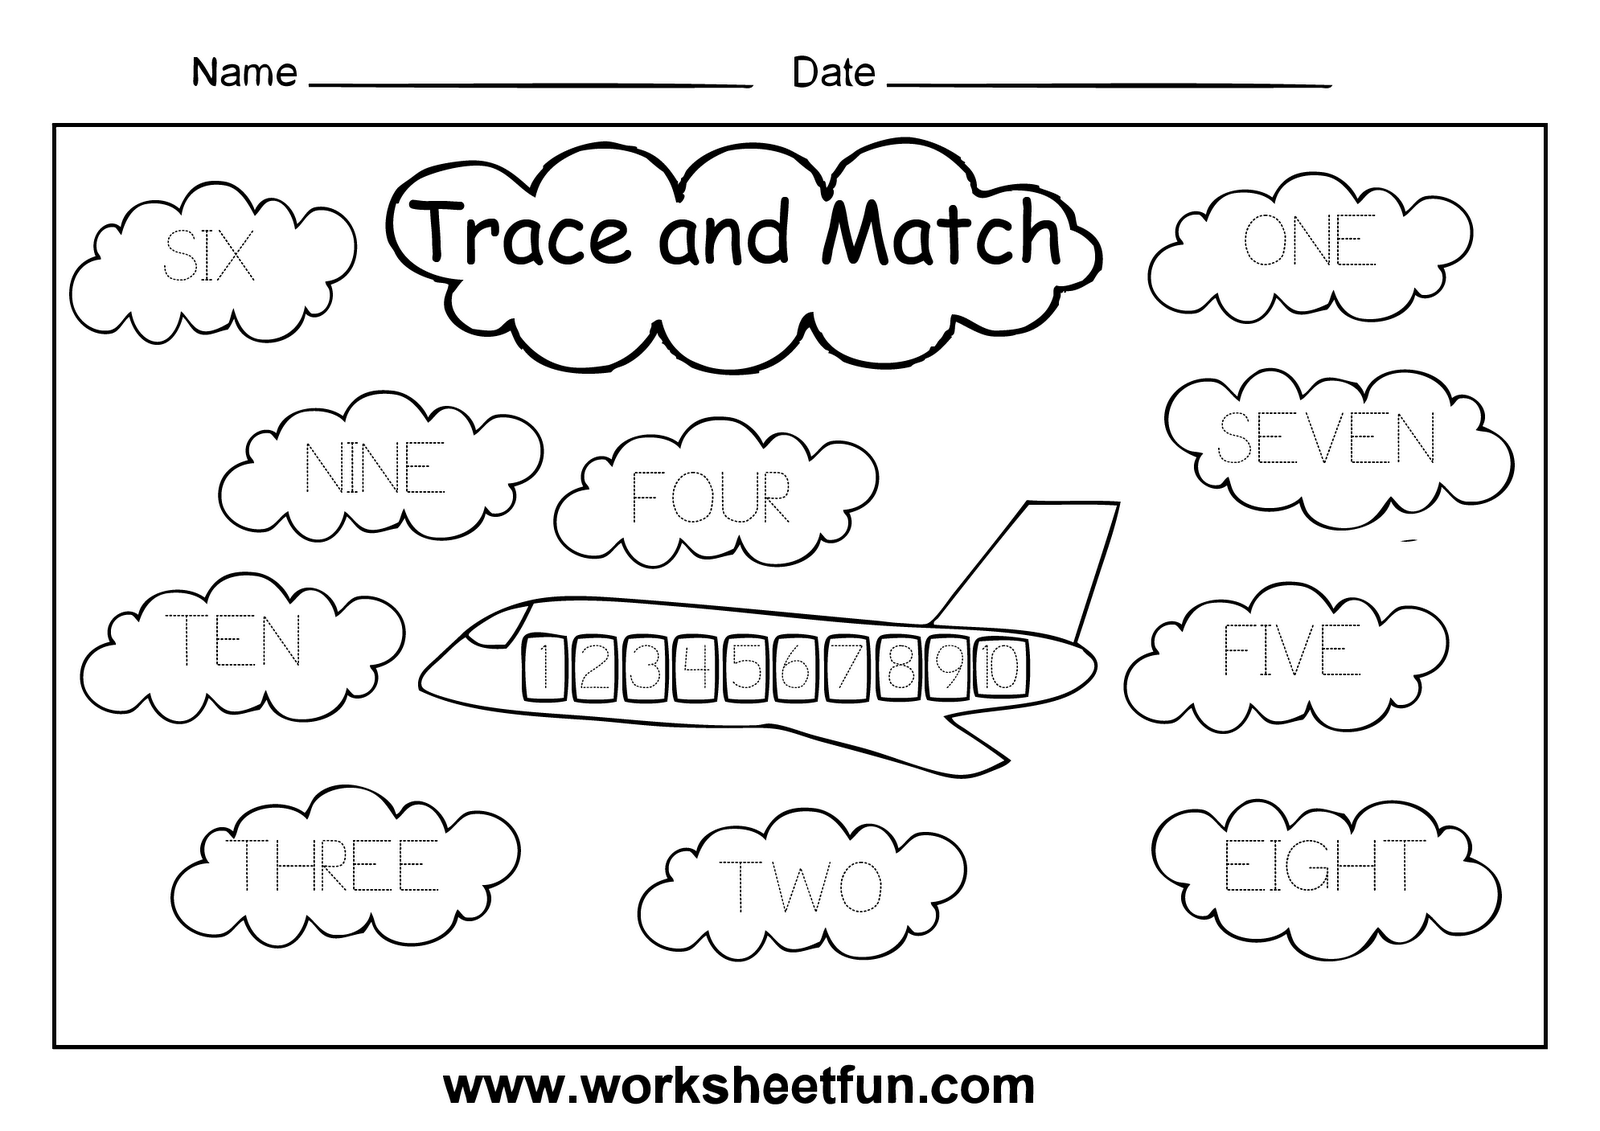 14 Best Images Of Worksheets Counting 1 10